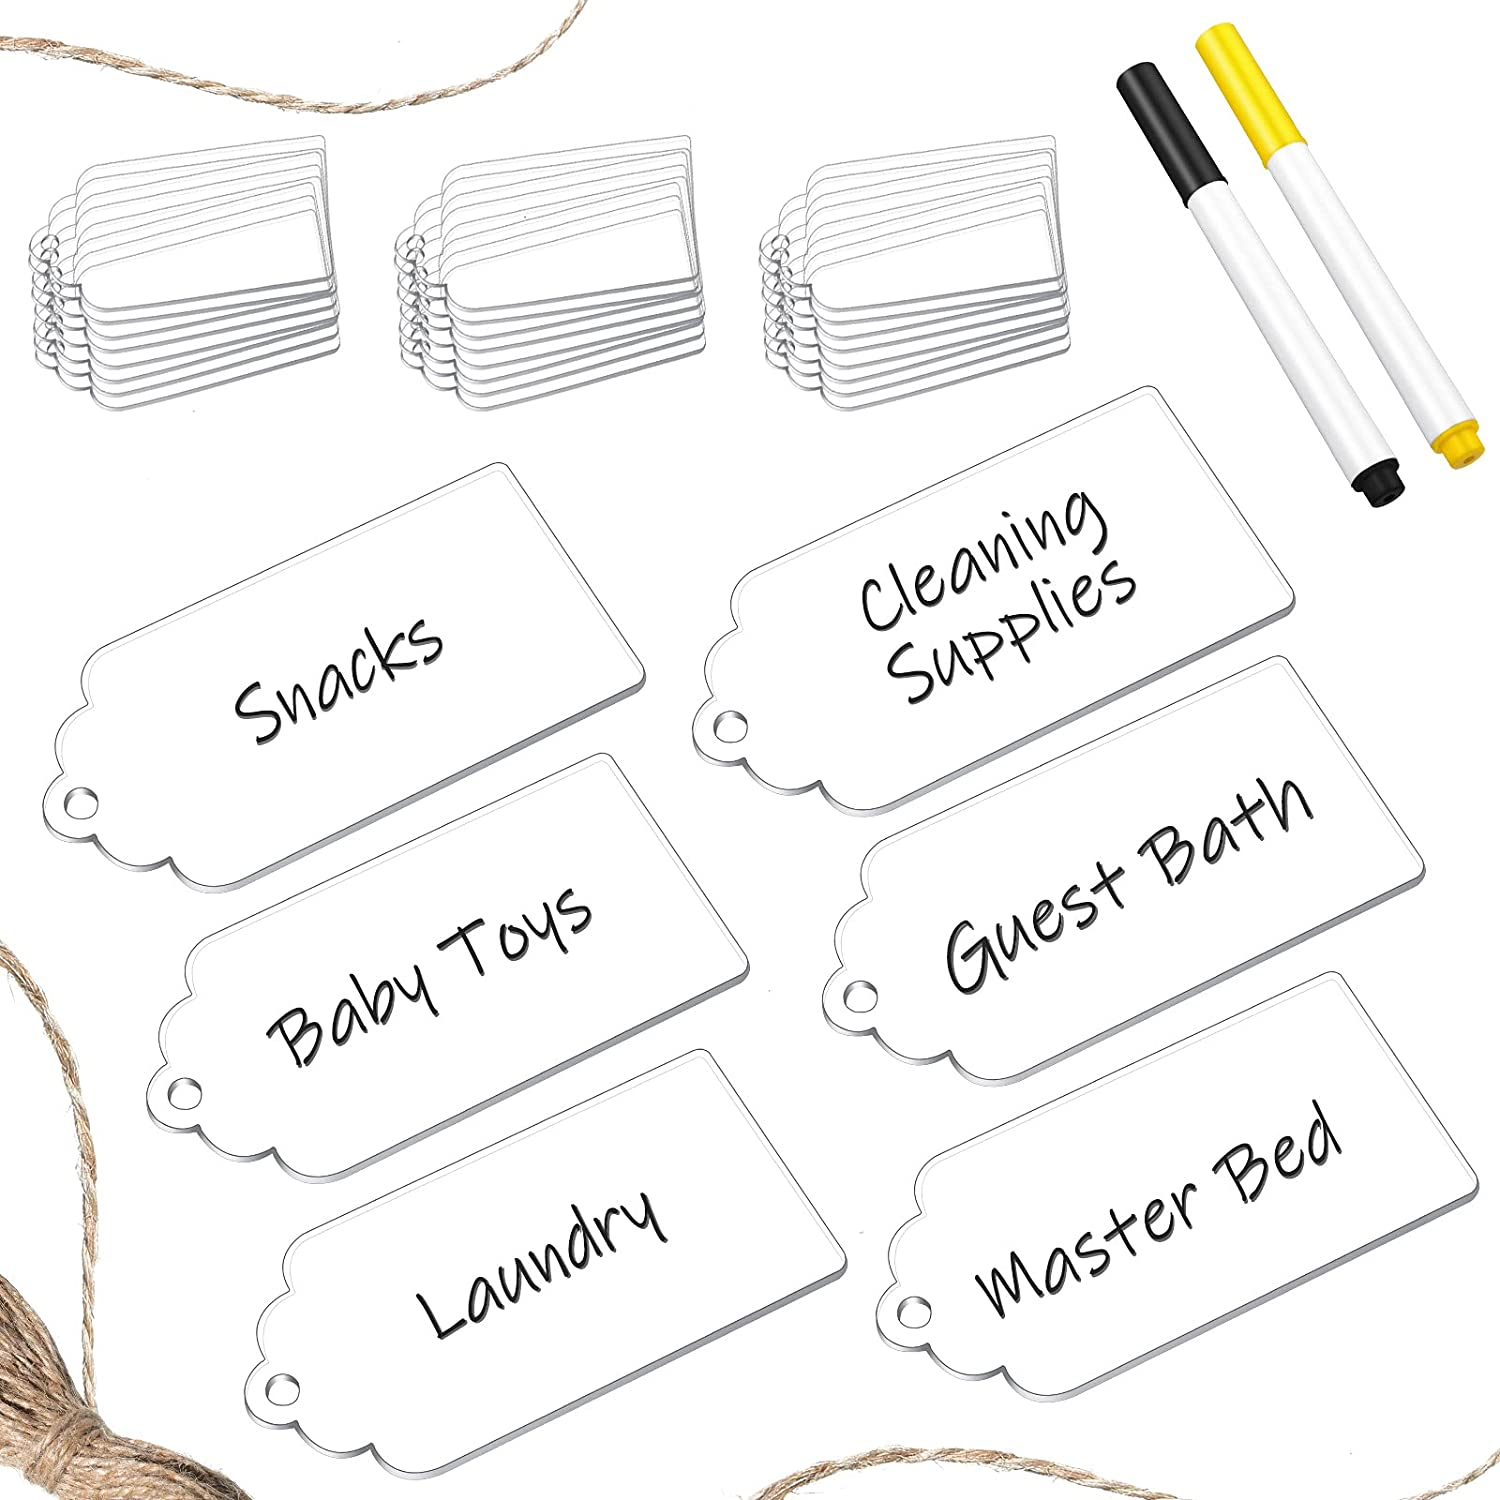 24 Pieces Basket Labels Acrylic Tags Basket Tags with 2 Pieces Mark Pens Labels for Storage Bins Bin Clip Labels for Baskets Kitchen Office Present Boxes Message Tags (Clear)